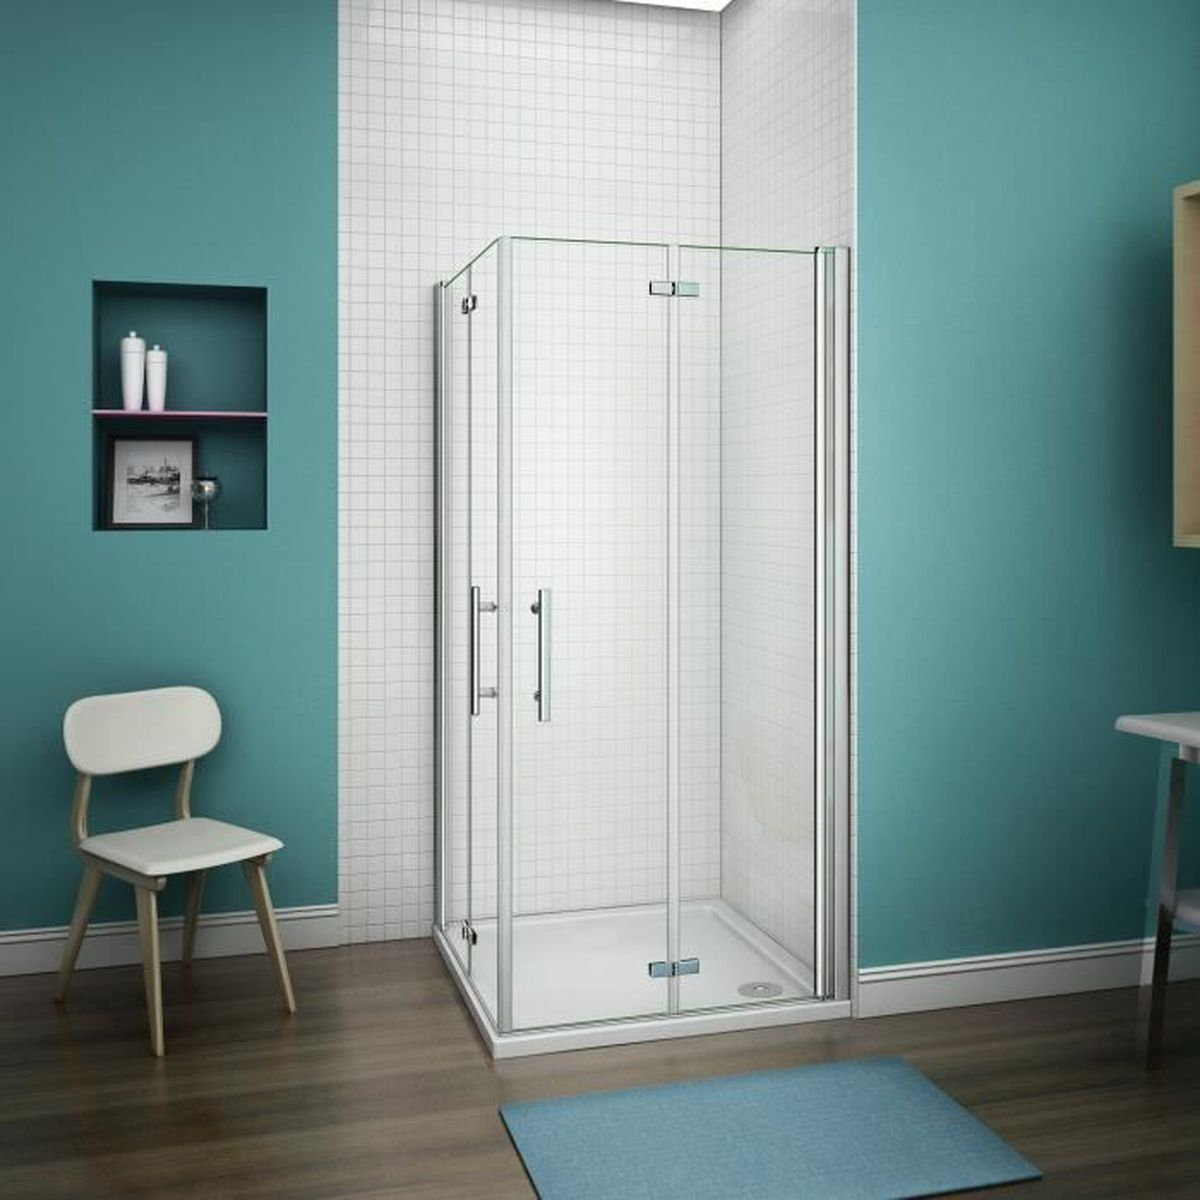 70 70 185cm shower enclosure porte de douche pliante for Porte de douche pliante